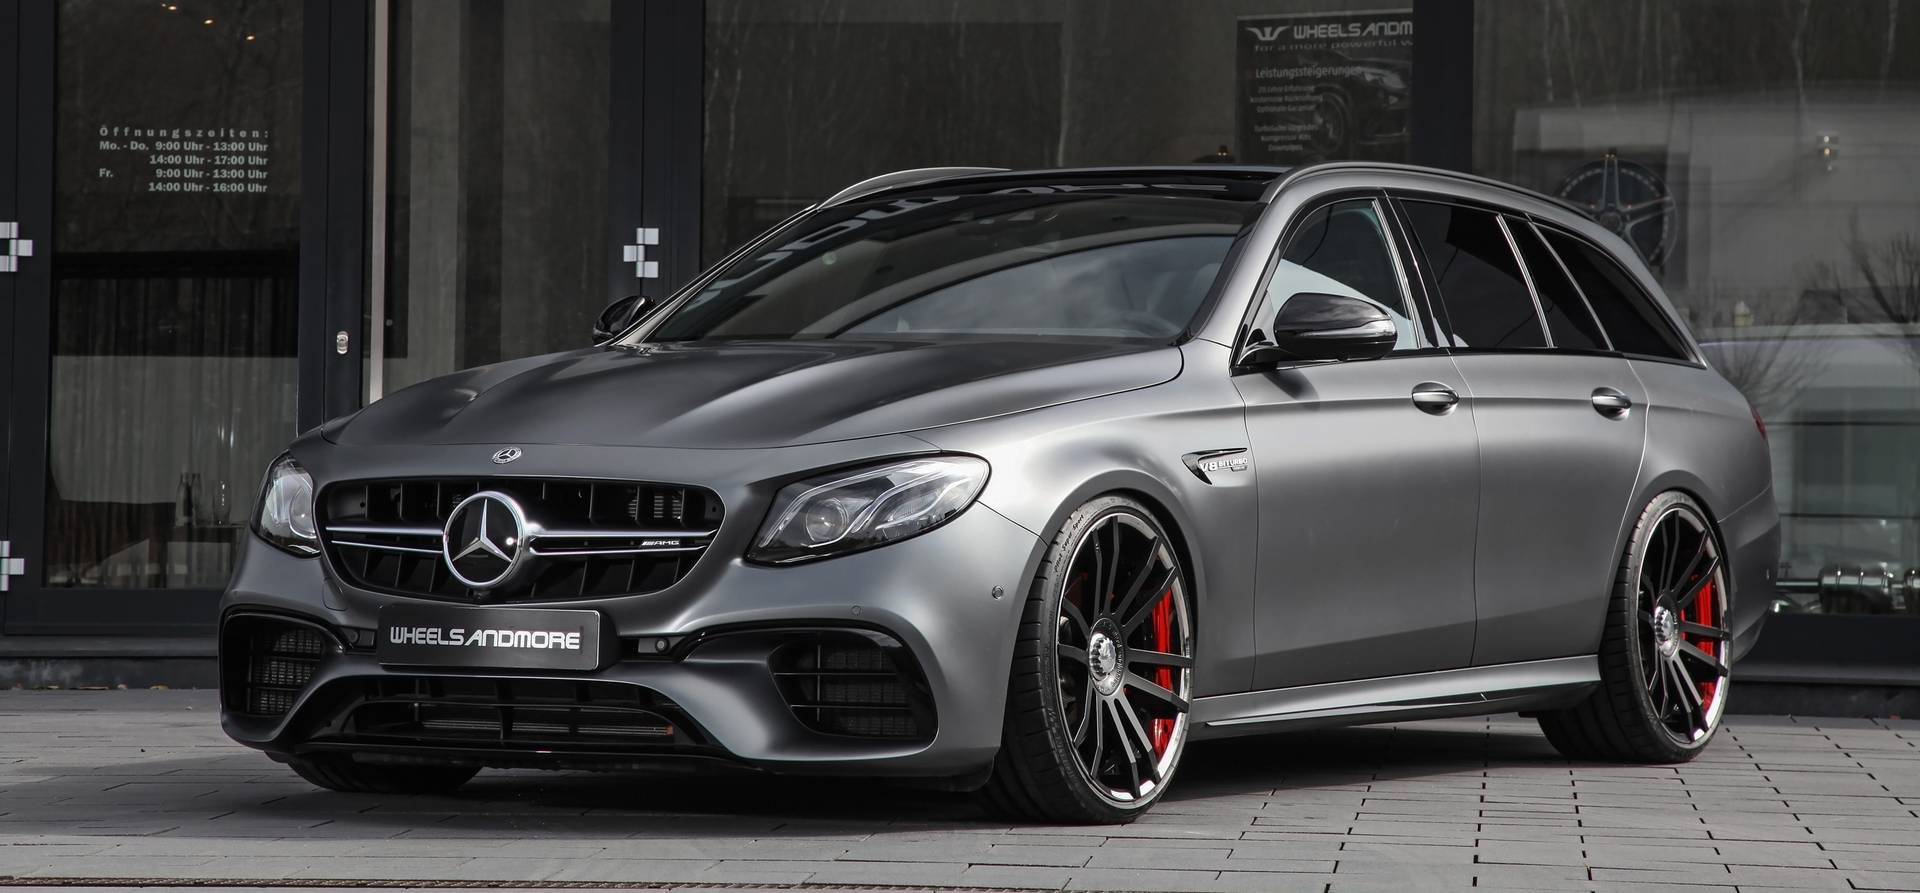 712hp for the mercedes amg e63 s estate by wheelsandmore gtspirit. Black Bedroom Furniture Sets. Home Design Ideas